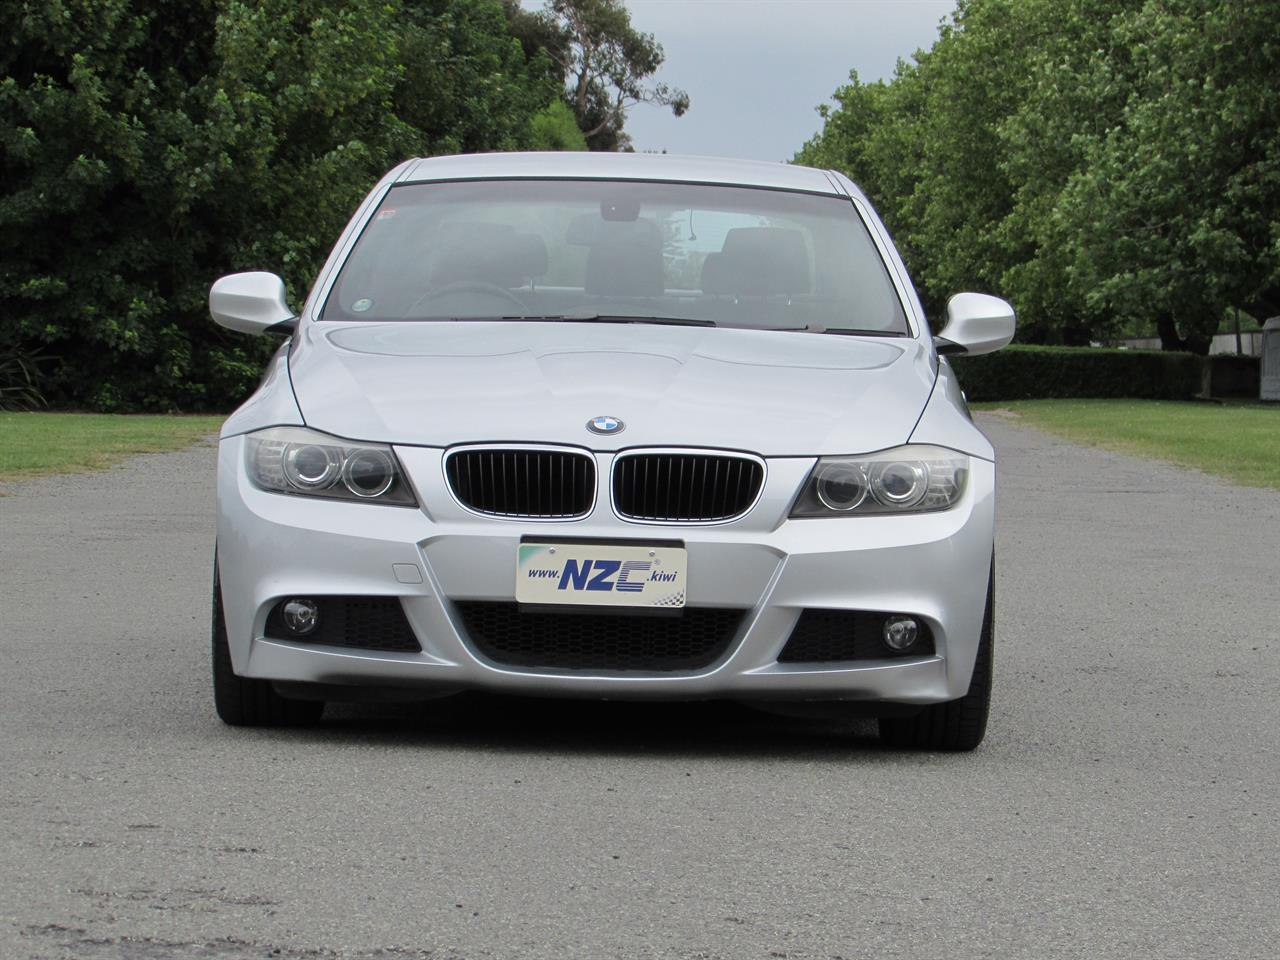 2009 BMW 320I | only $59 weekly